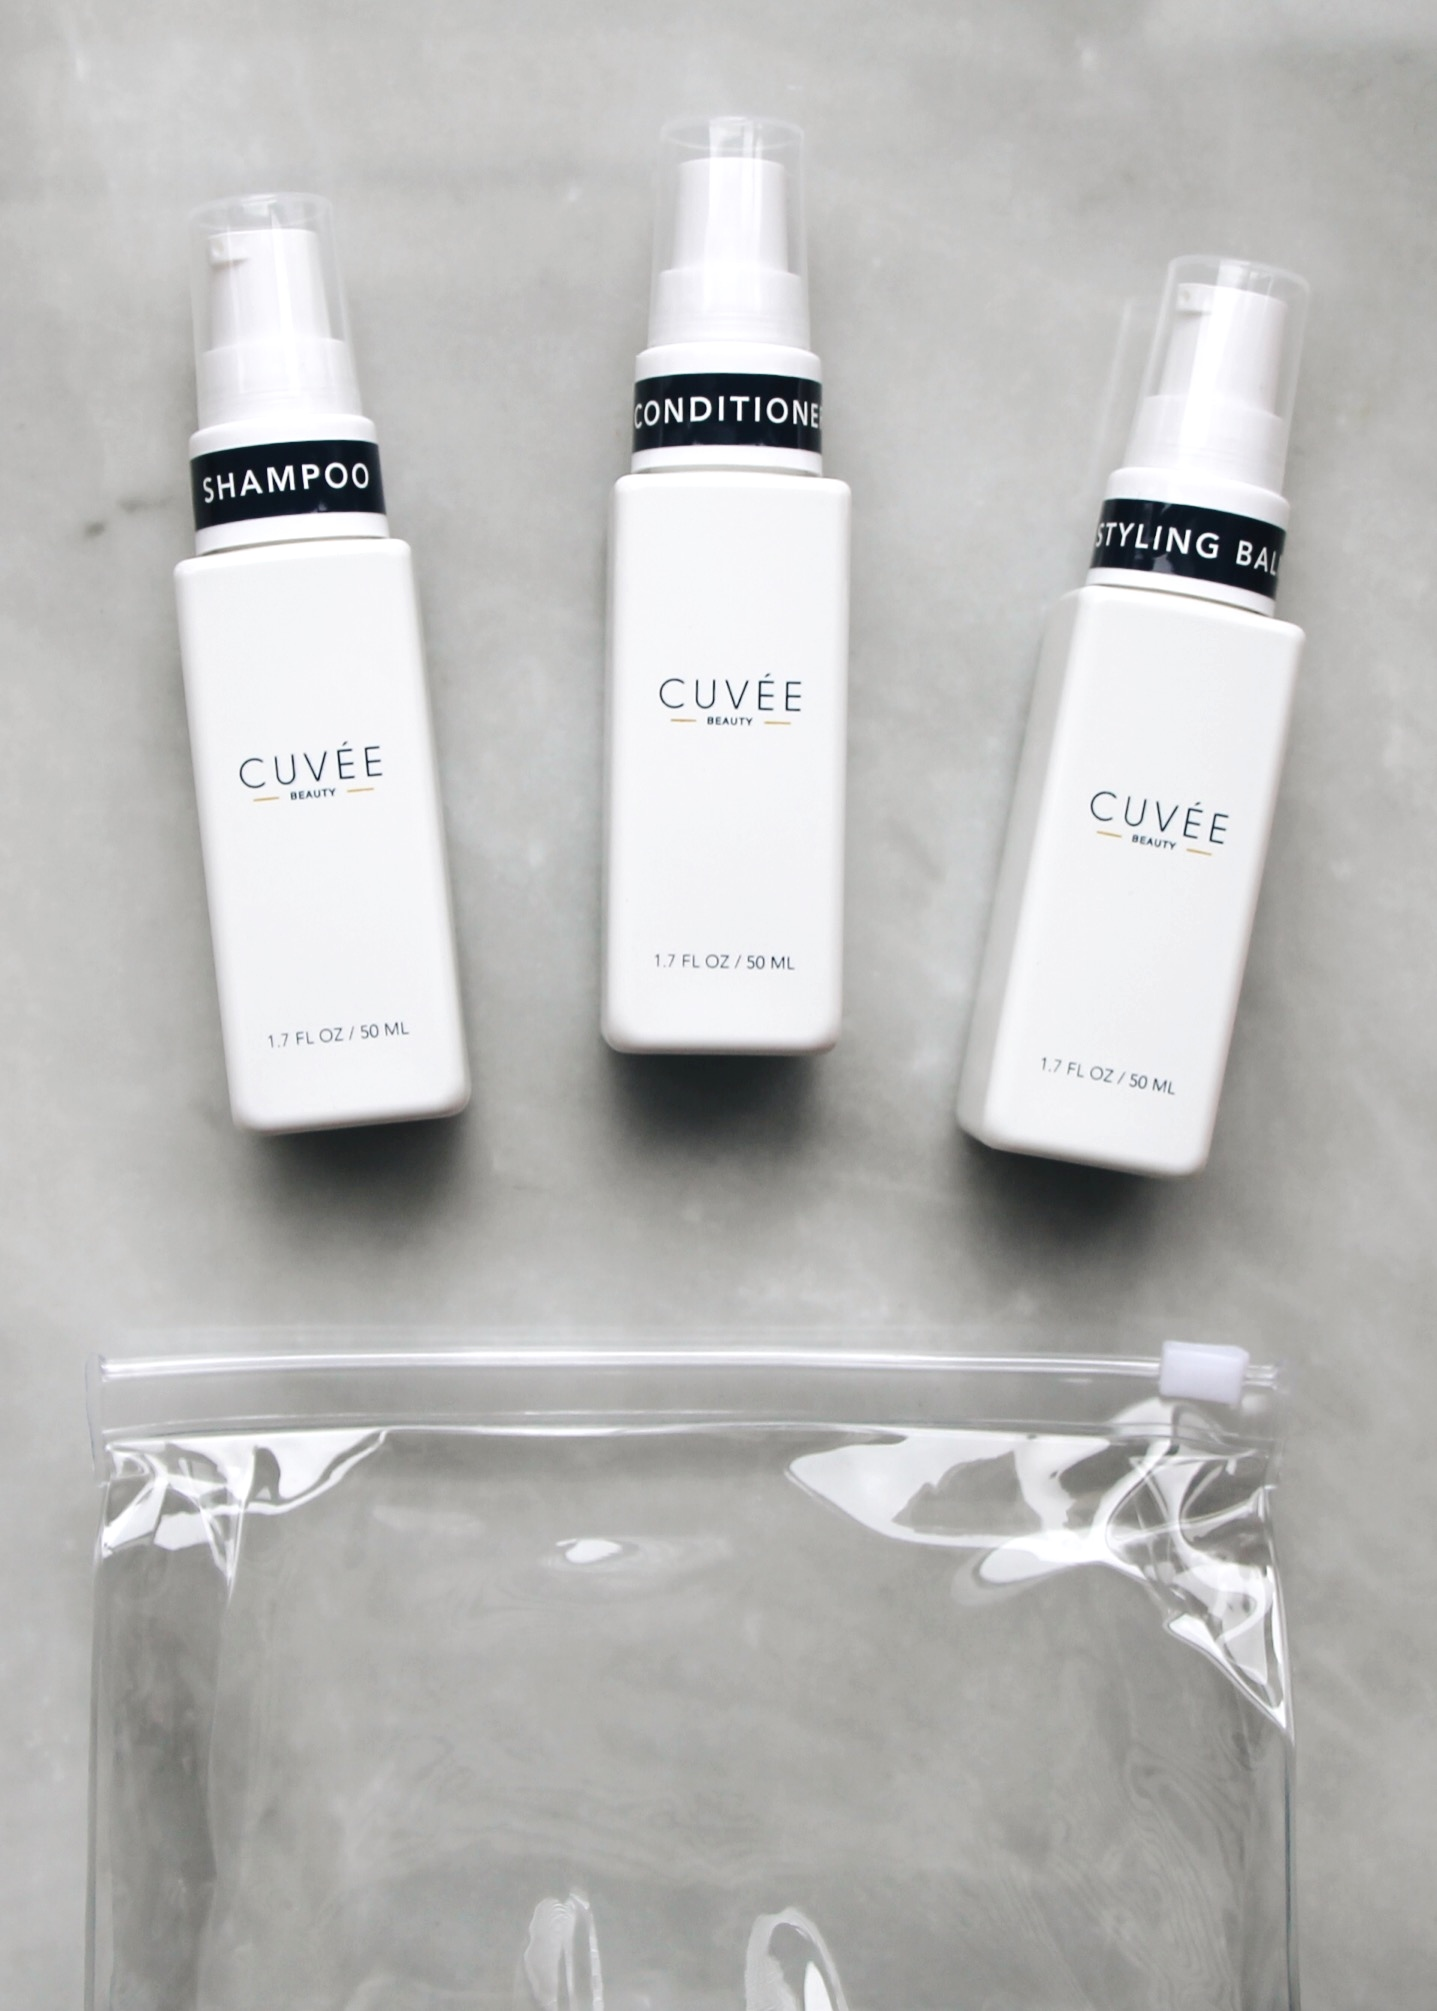 Coolest Indie Beauty Brands: Cuvee Beauty, Cuvee Beauty, Haircare